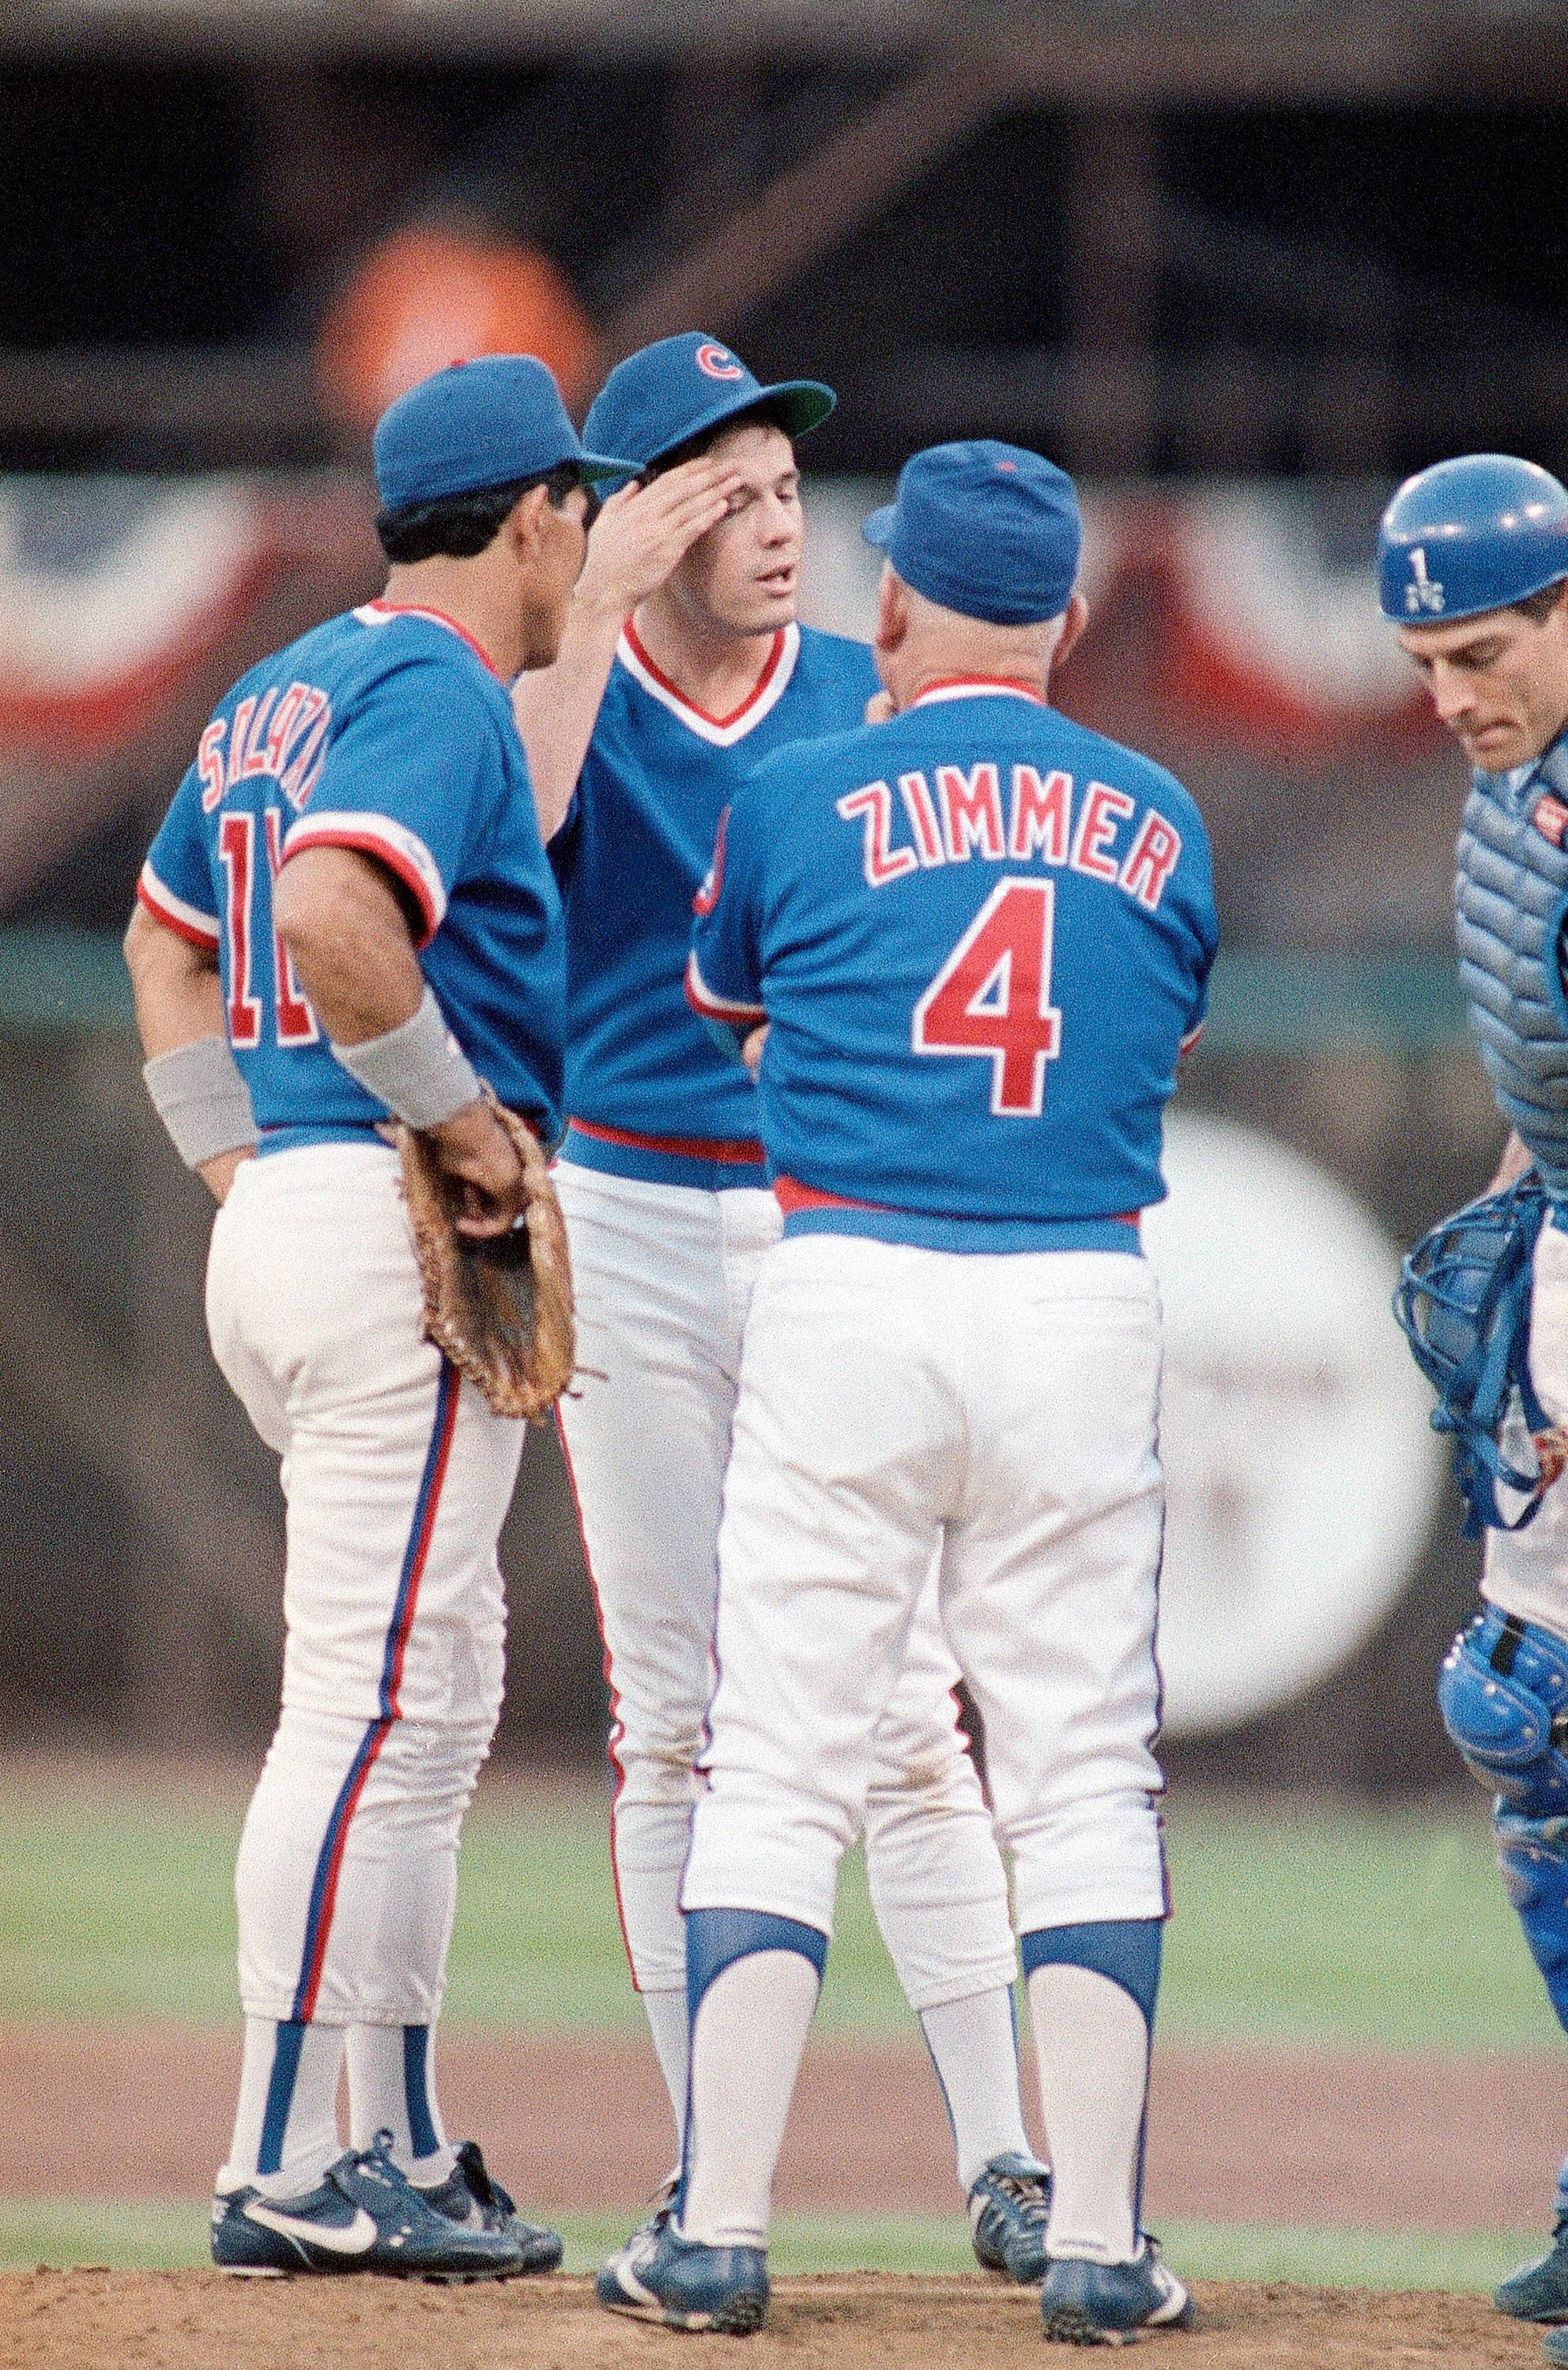 Chicago Cubs starting pitcher Greg Maddux, center, wipes his brow as he talks to Cubs third baseman Luis Salazar (11) and manager Don Zimmer (4) during the third inning of the fourth game of the NLCS against the Giants, Sunday, Oct. 8, 1989, San Francisco, Calif. Maddux was pulled from the game in the fourth inning.